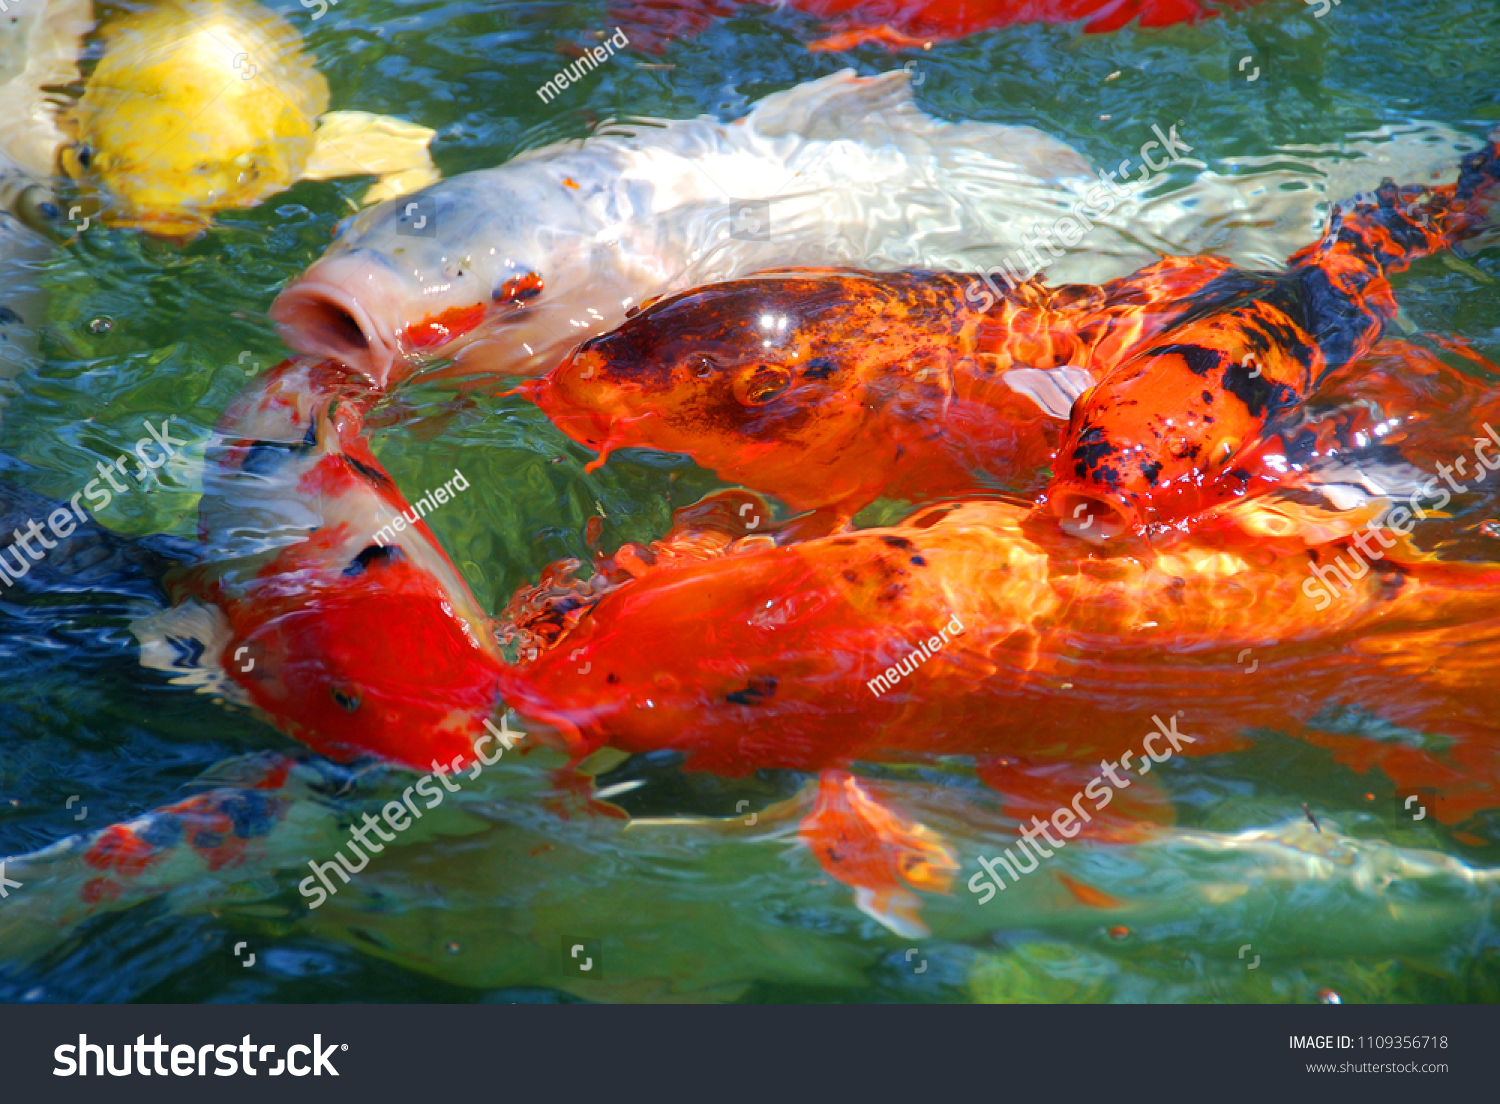 Koi Fish Colored Varieties Amur Carp Stock Photo (Royalty Free ...